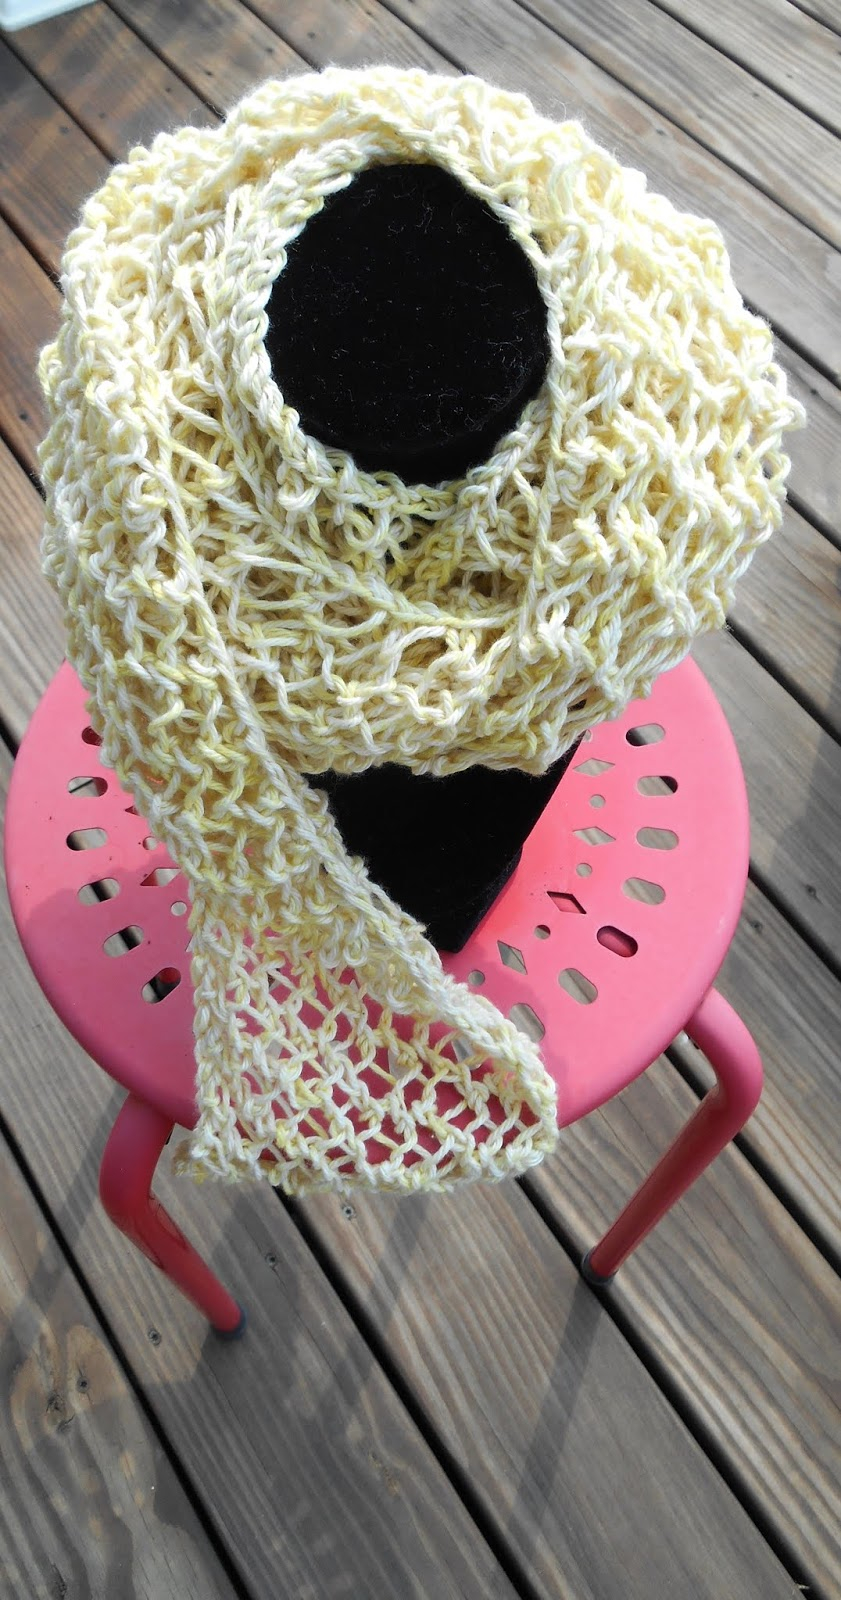 Open Knit Scarf Pattern Knitting With Schnapps Introducing The Breezes To Gusts Scarf